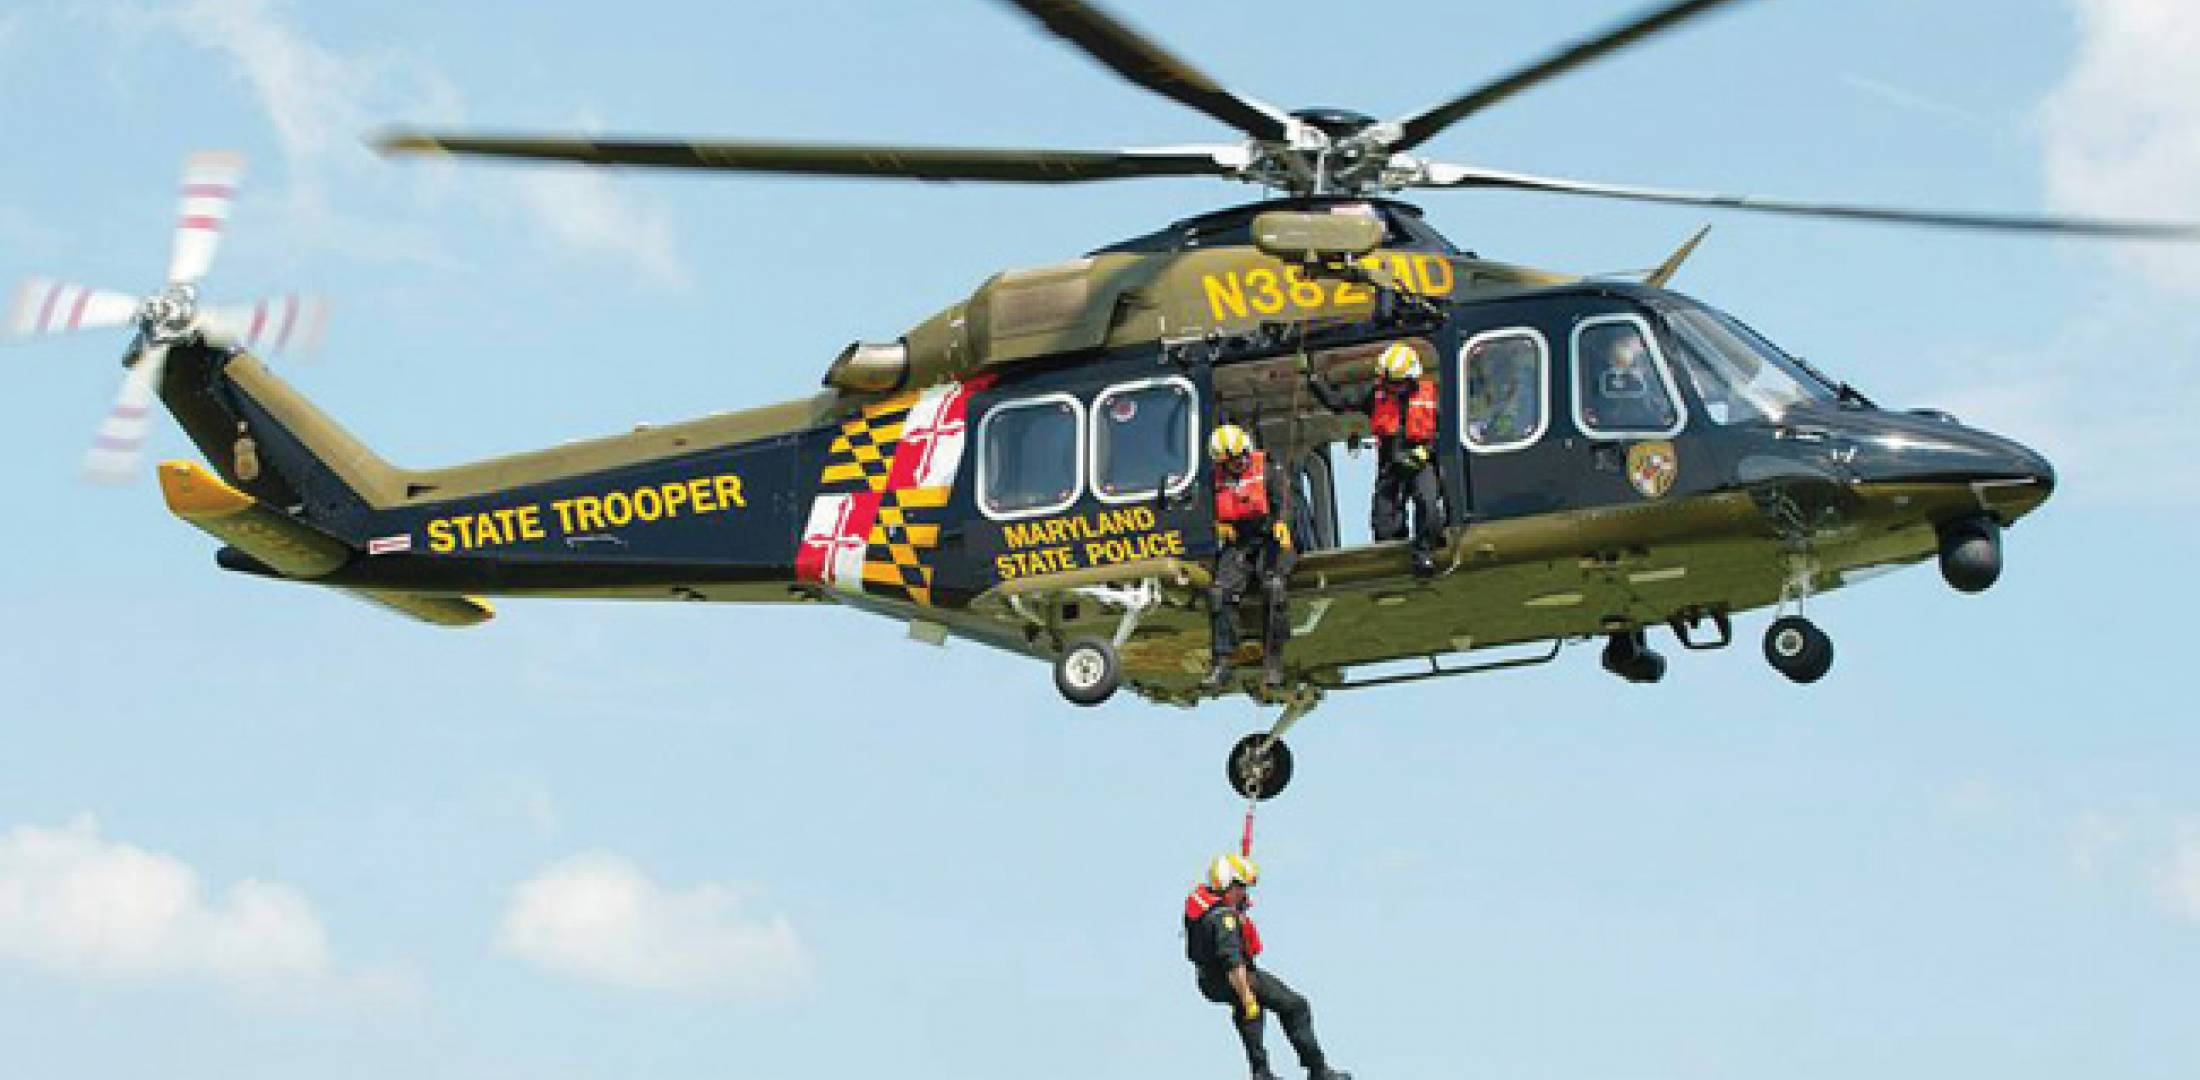 The Maryland State Police wlll fly 10 AW139s with two pilots on medevac and aerial law-enforcement support missions.